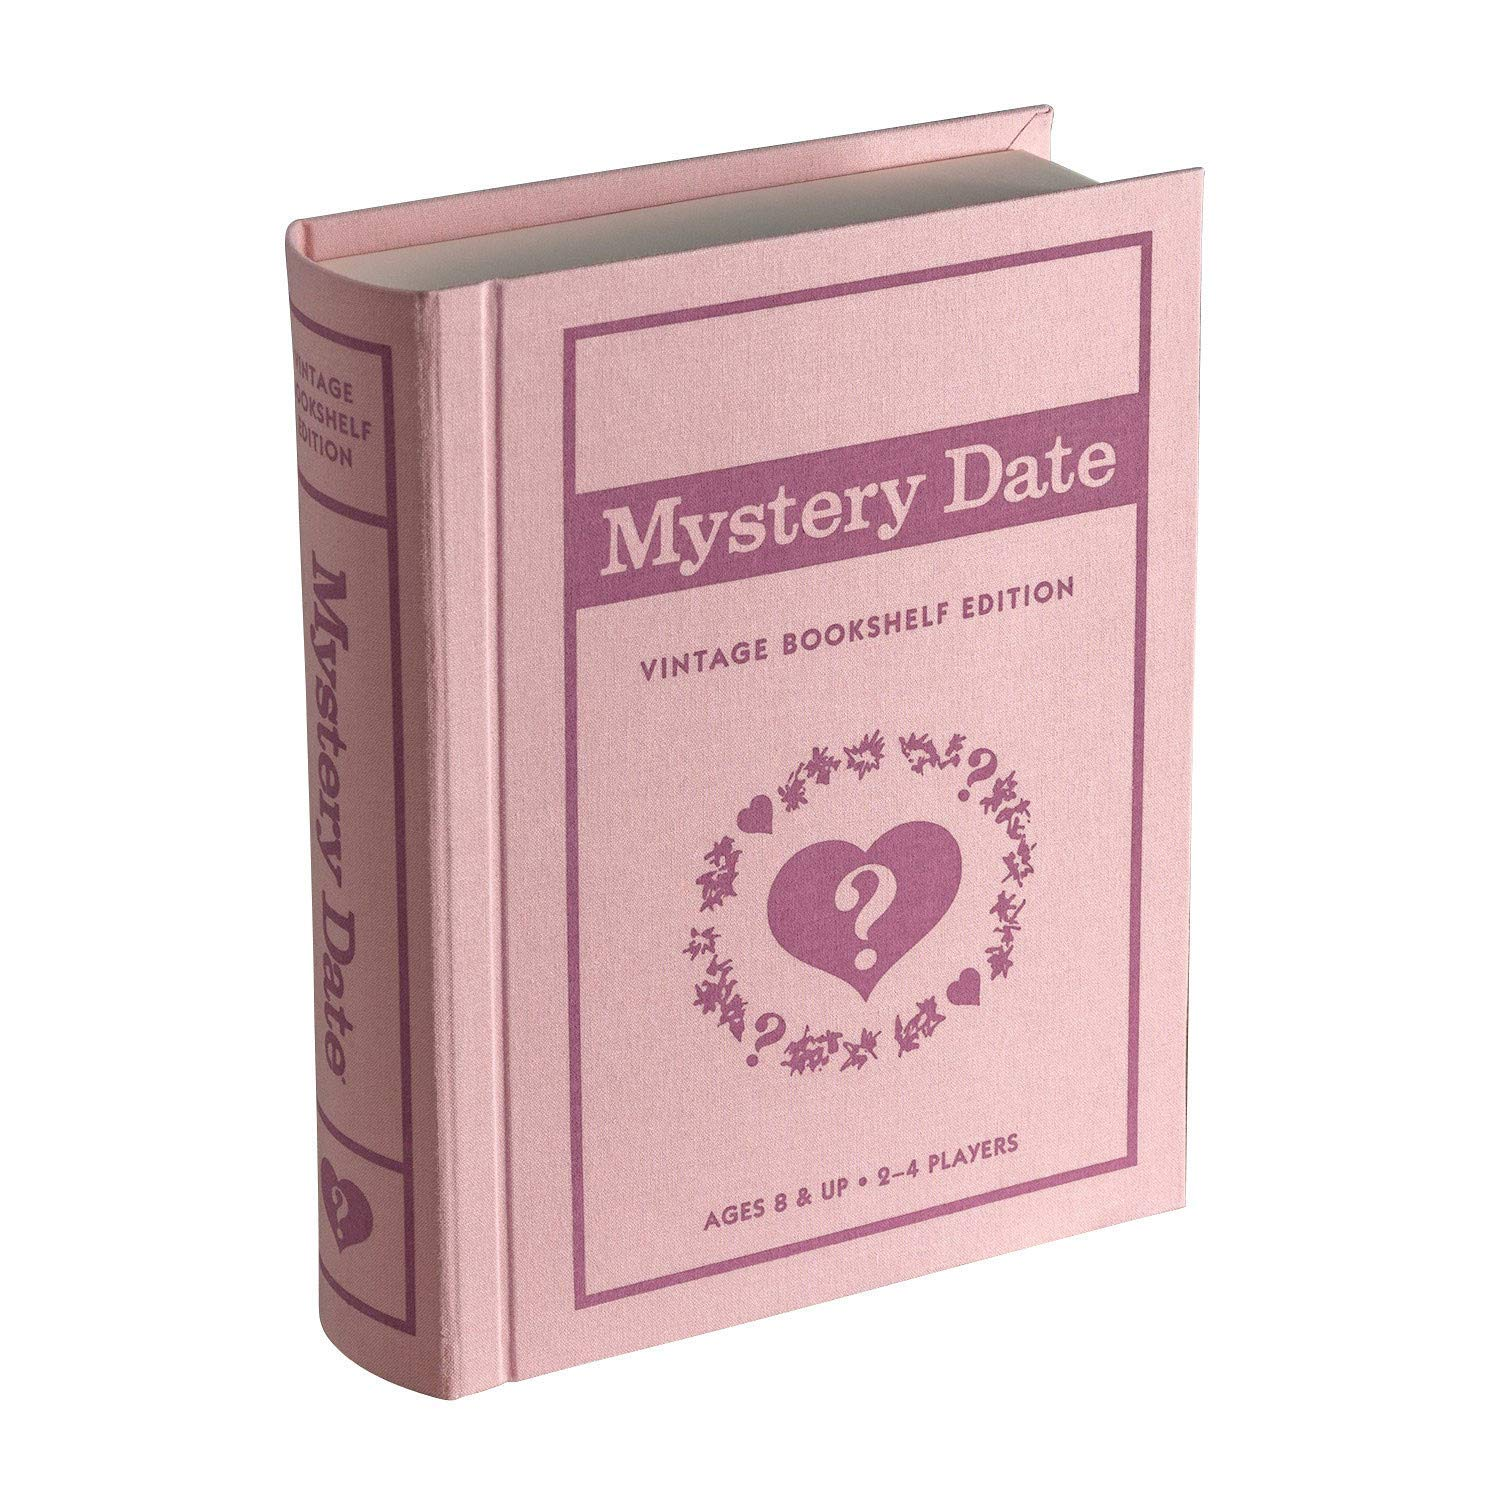 WS Game Company Mystery Date Vintage Bookshelf Edition, Pink